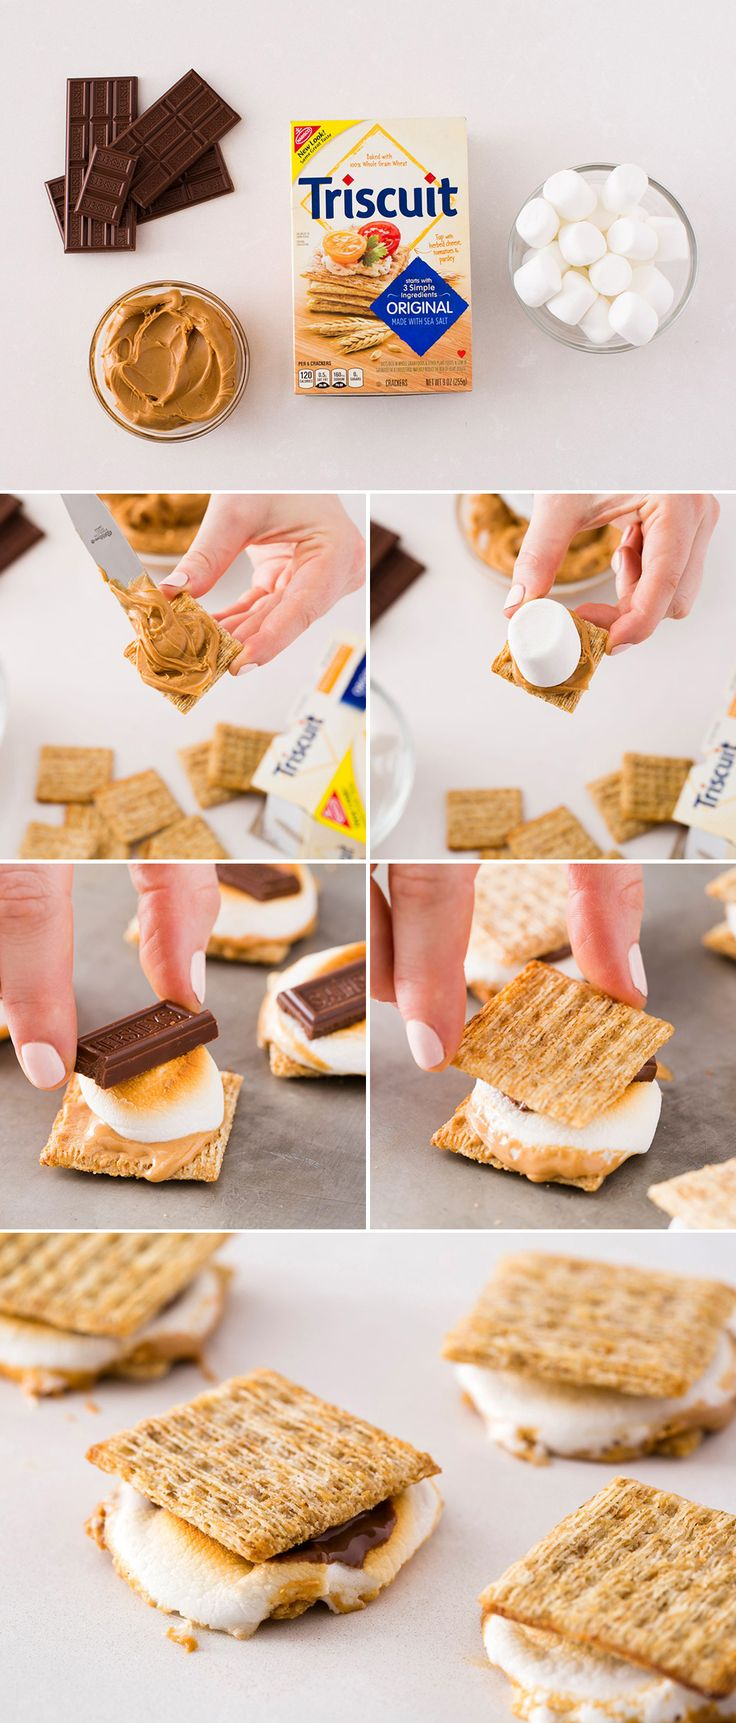 Make yummy Triscuit S'mores using just four ingredients. Brit + Co. #recipe